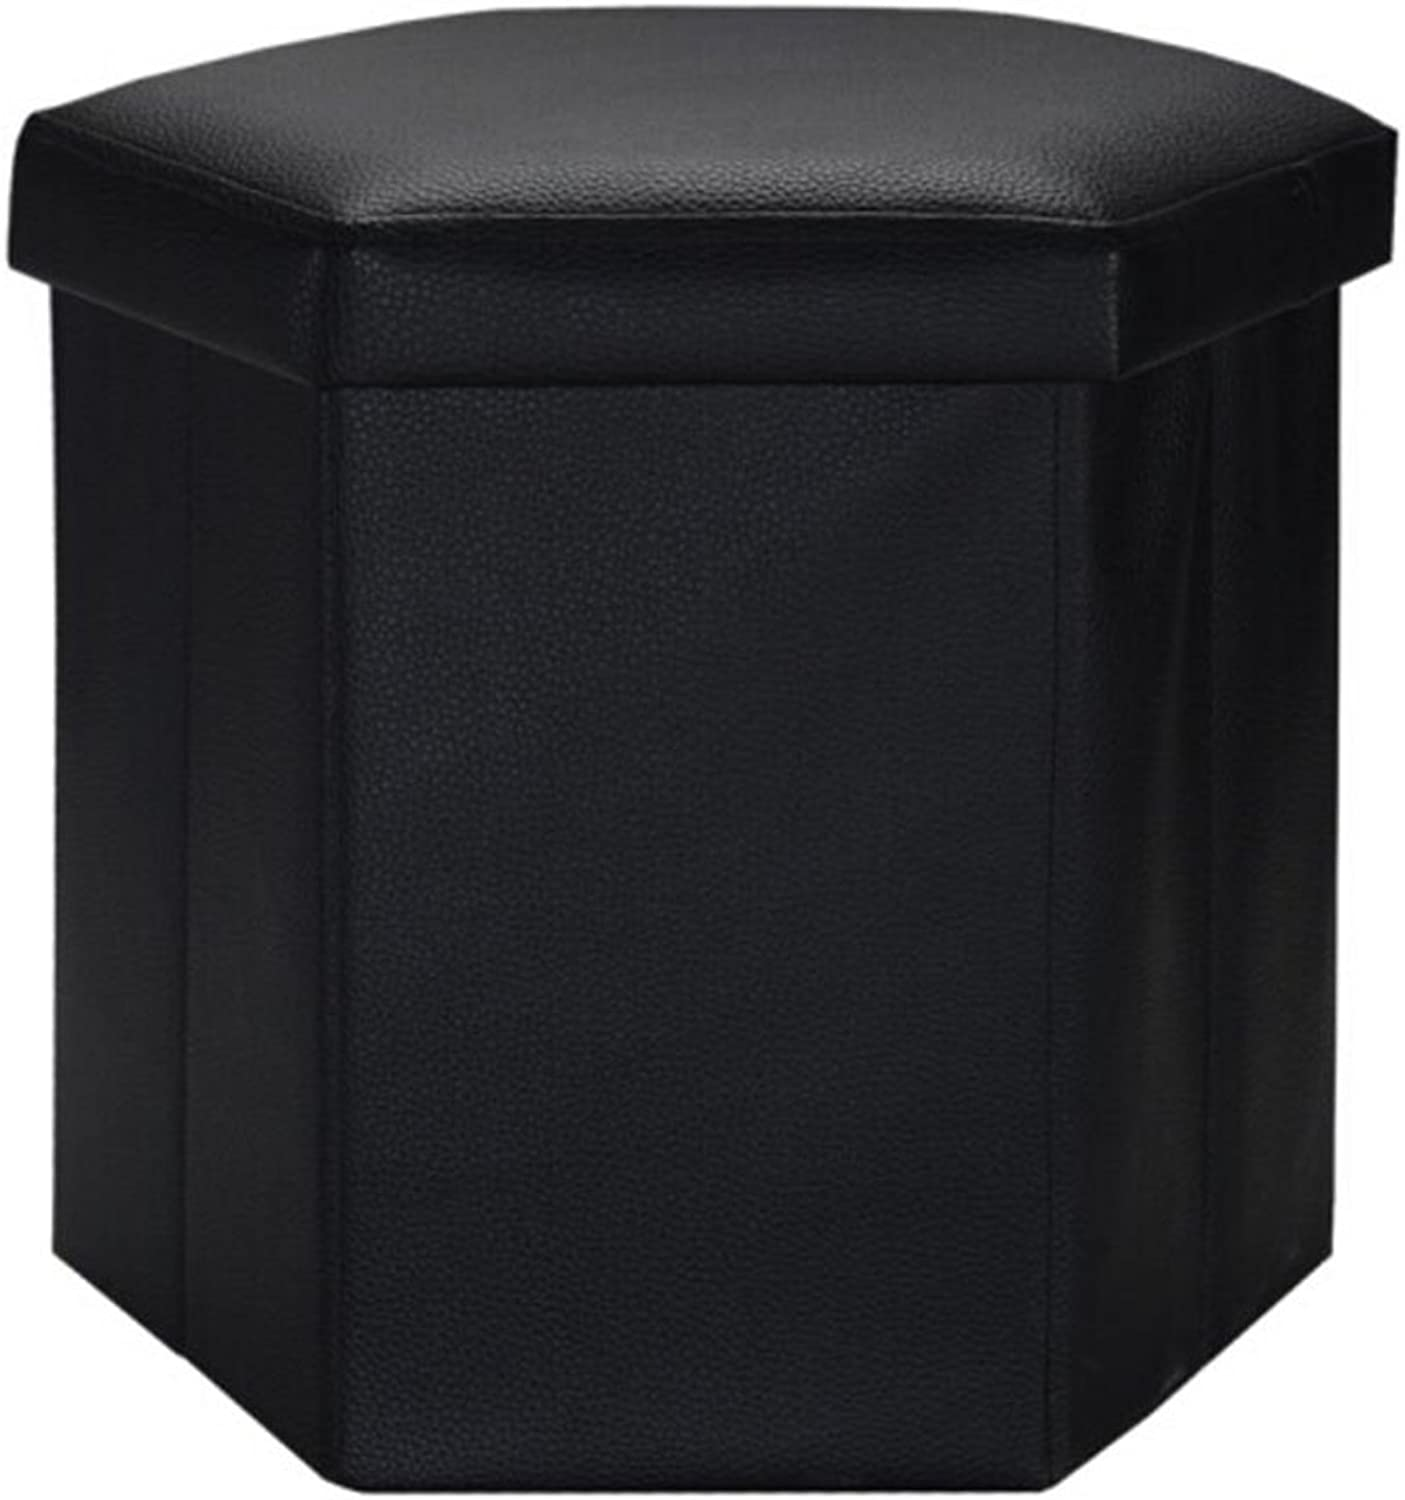 A-Fort Black 6-Corner Multi-Function Storage Stool Footstool Leather Stool Folding shoes Bench (color   Black, Size   42  38  38cm)